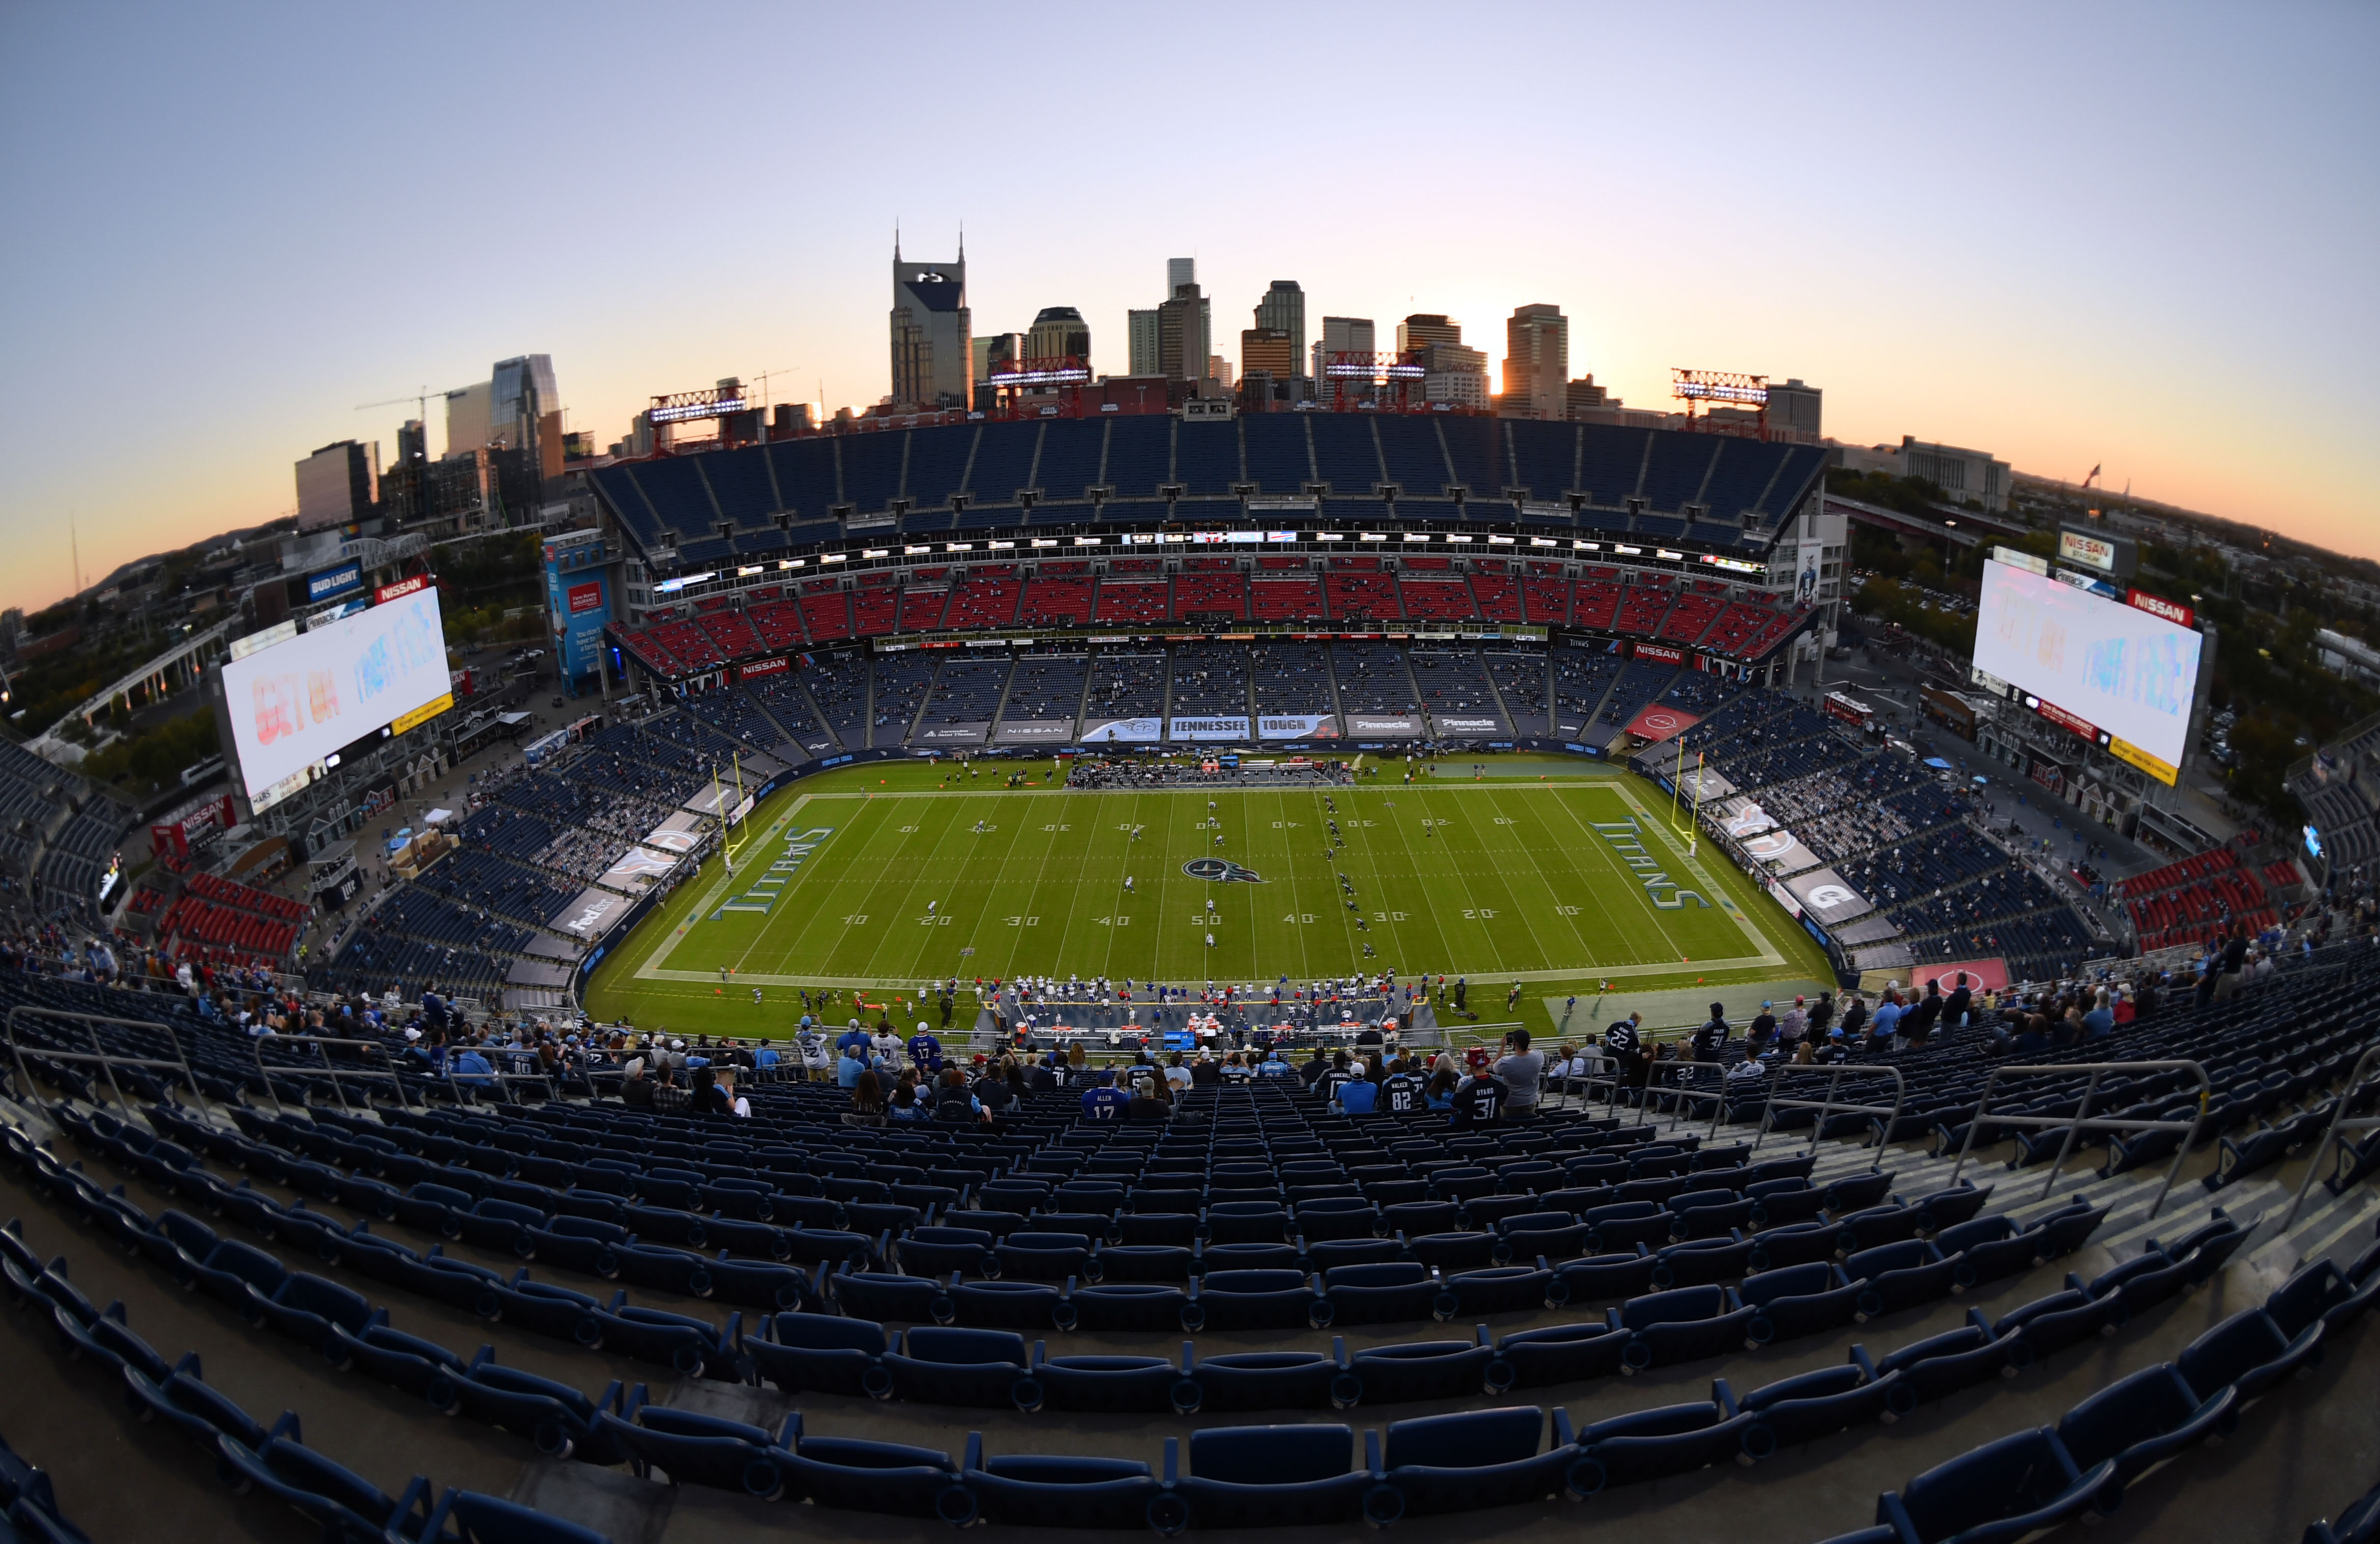 General view Nissan Stadium prior to the kickoff of the game between the Tennessee Titans and the Buffalo Bills.